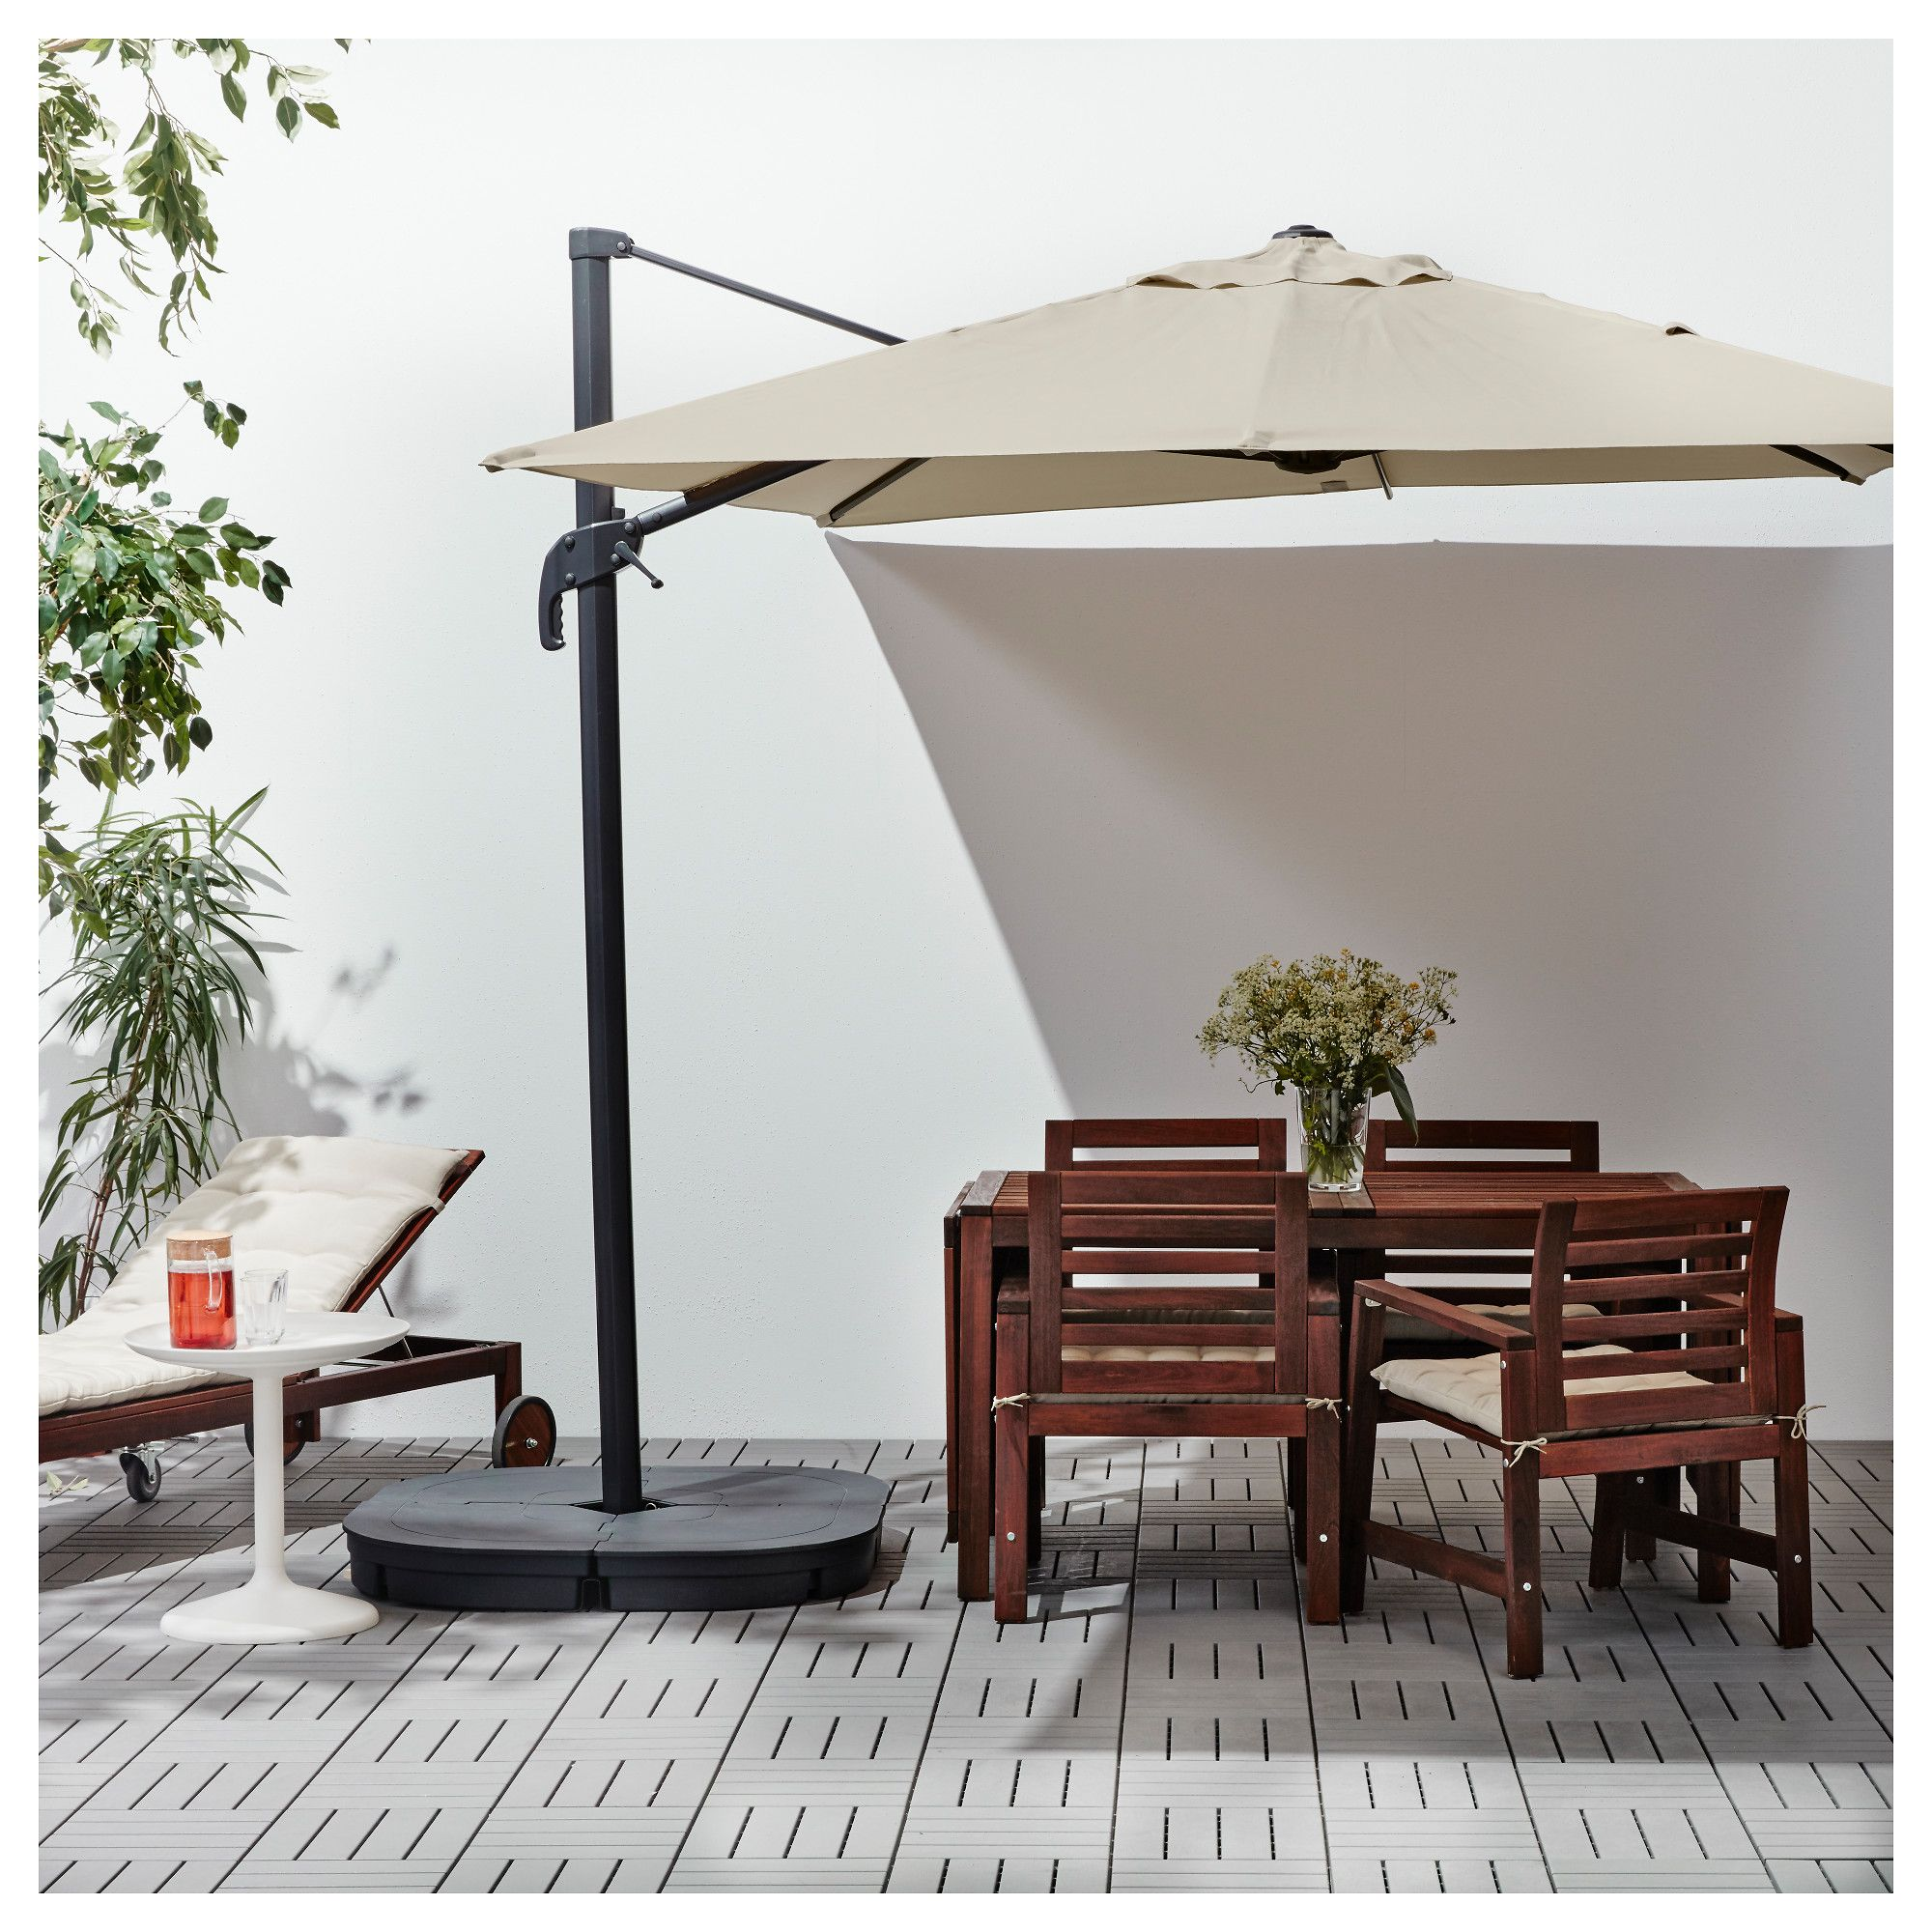 Ikea Parasol Balkon Furniture And Home Furnishings Hanging Umbrellas Offset Patio